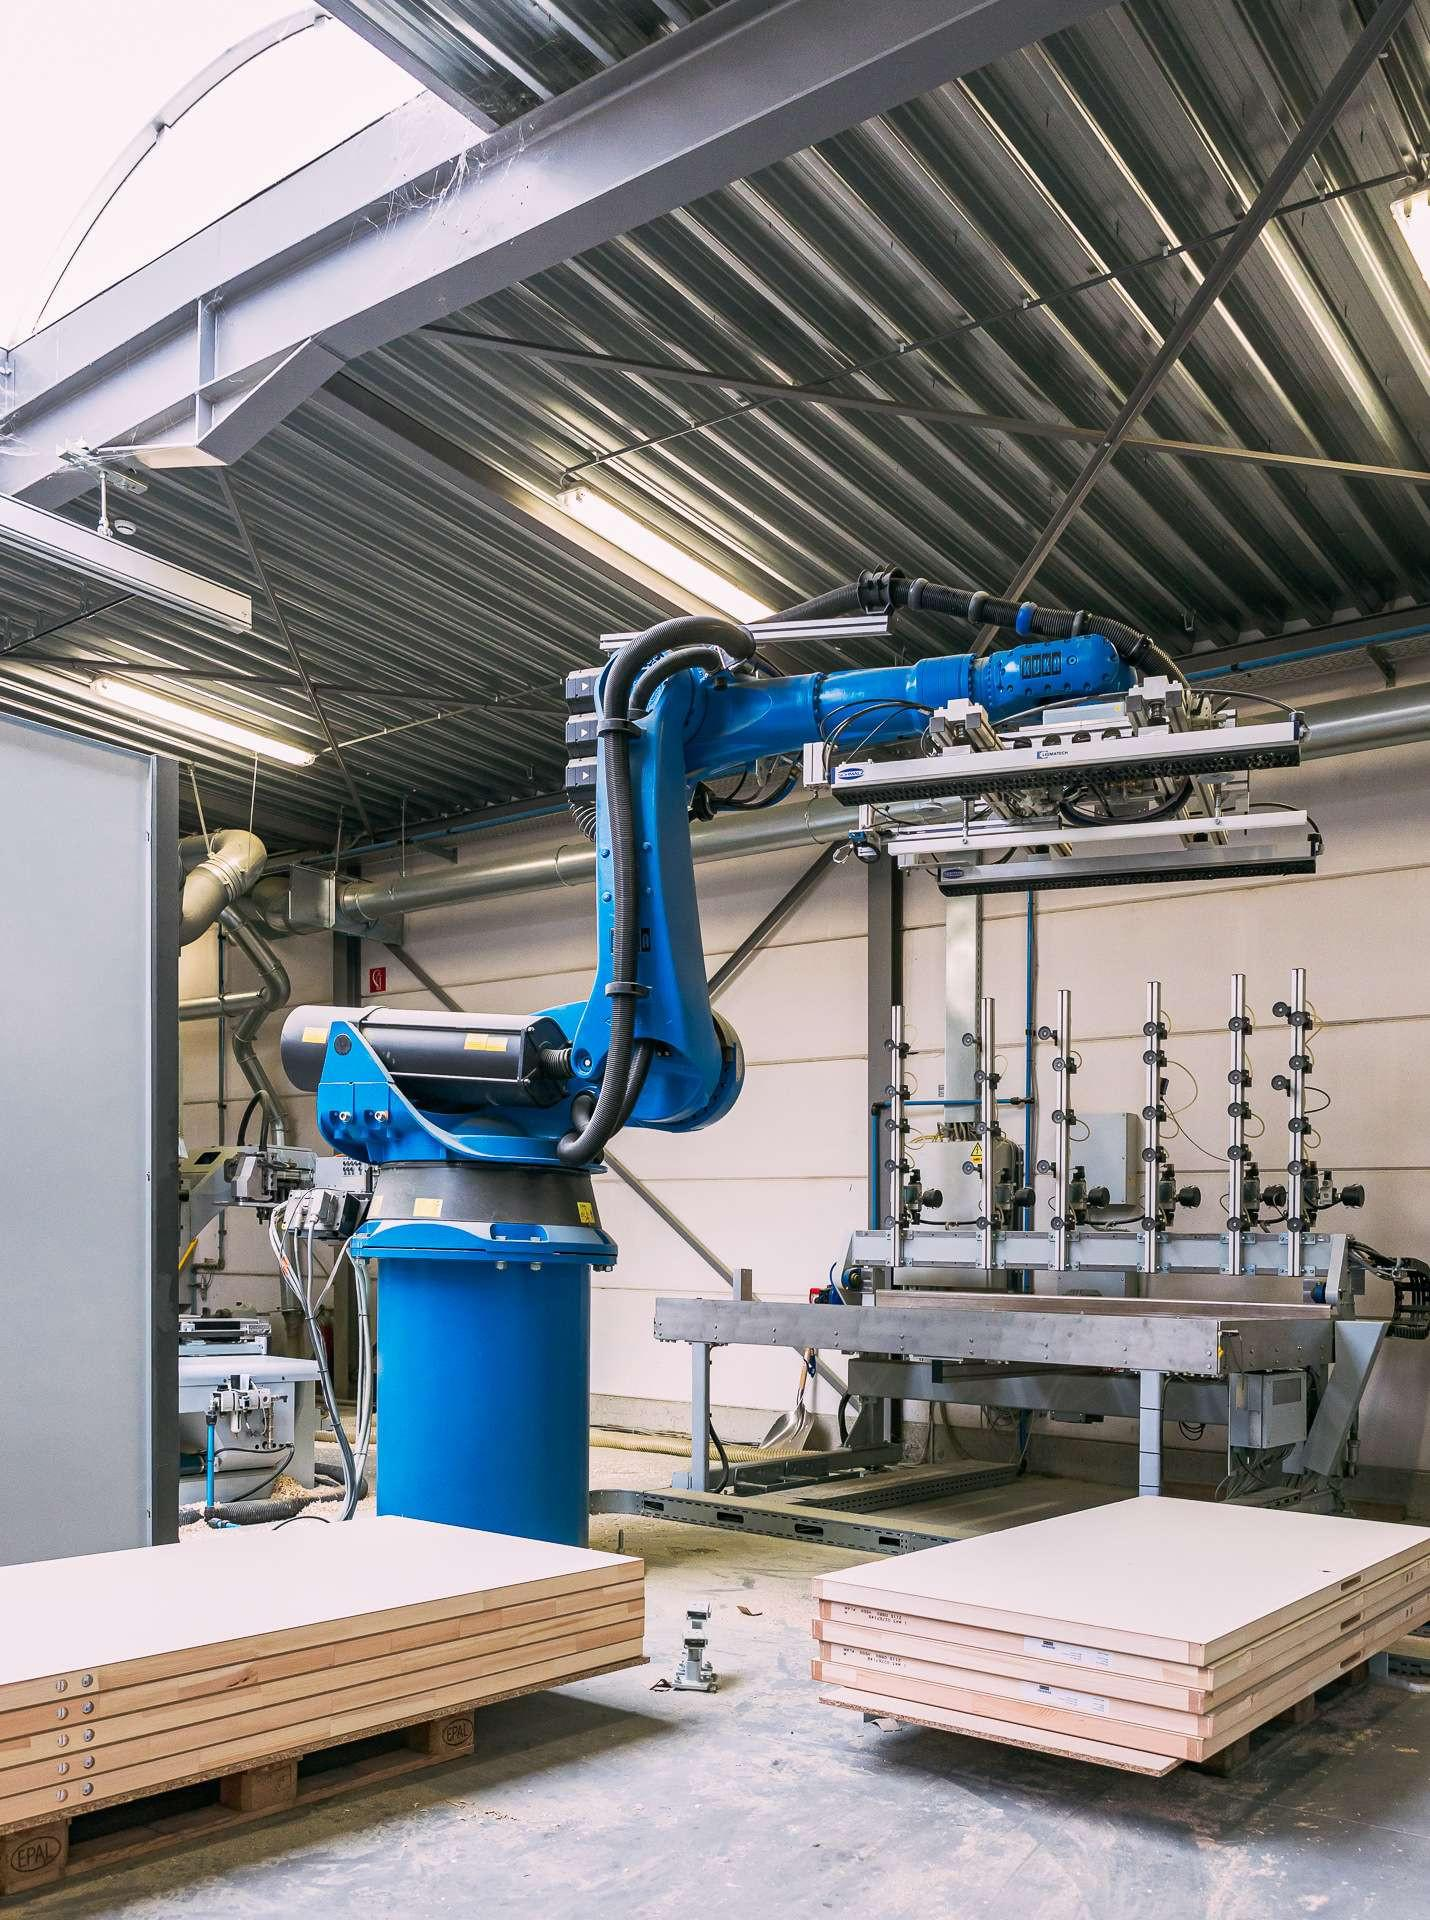 ATA Interieur - Productie - Industrie 4.0 robot